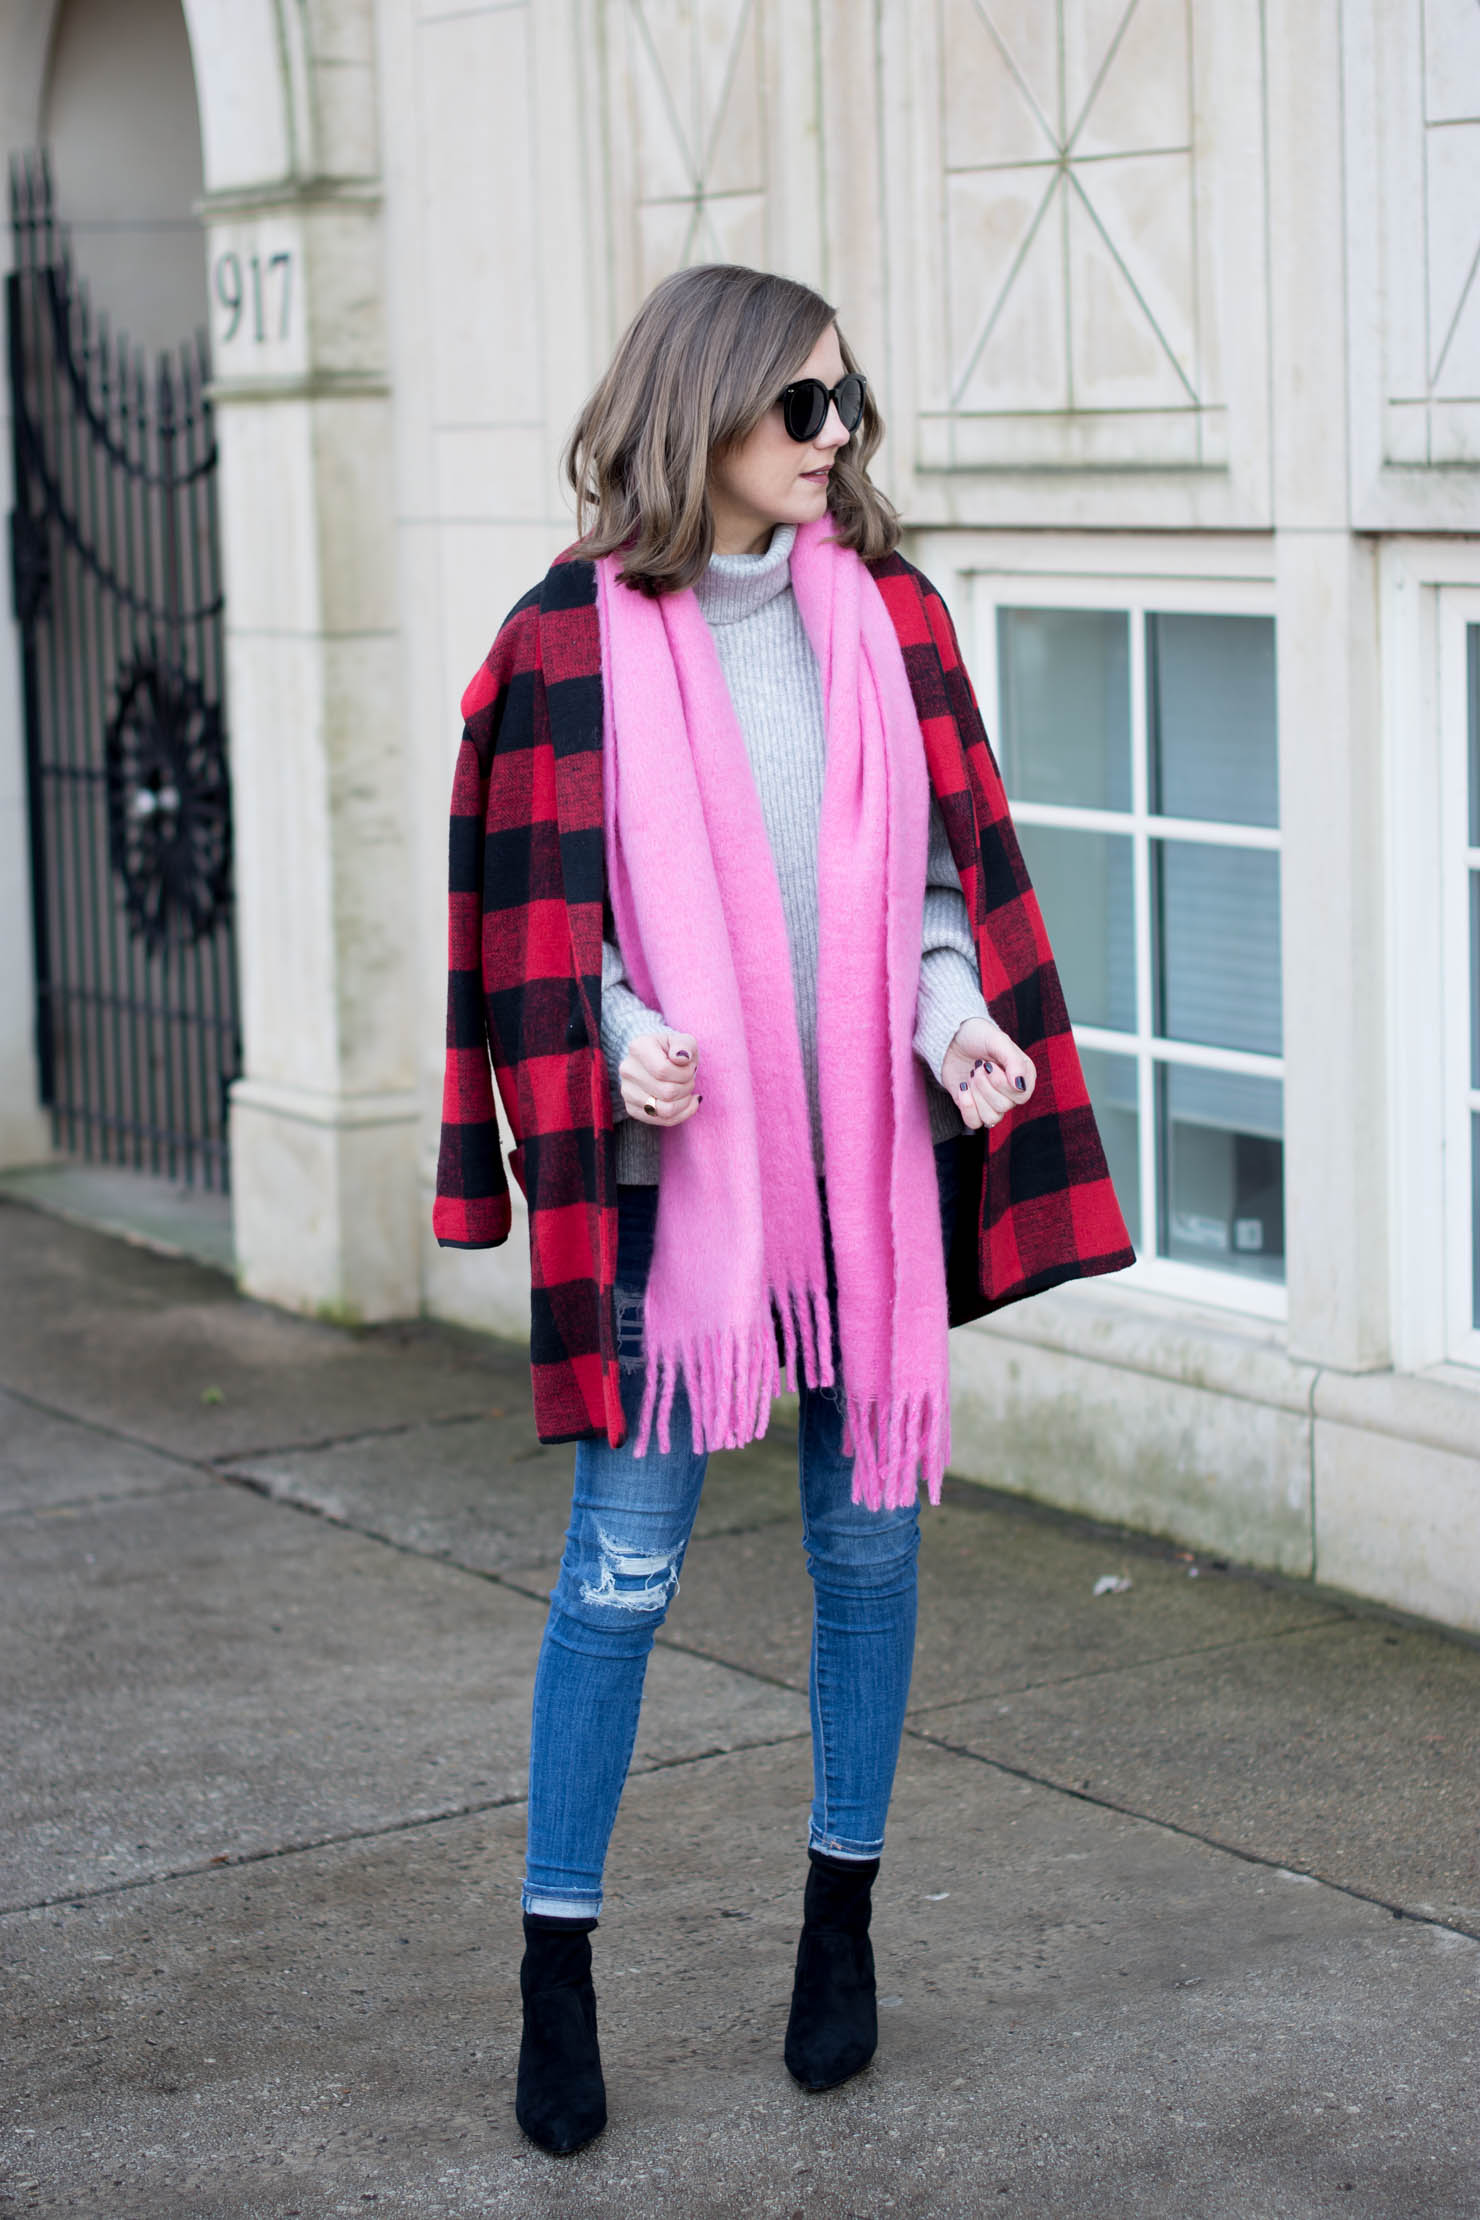 cozy red and pink outfit, valentines day, buffalo plaid checked coat, oversized fuzzy pink scarf, new sleeve trend, balloon sleeves